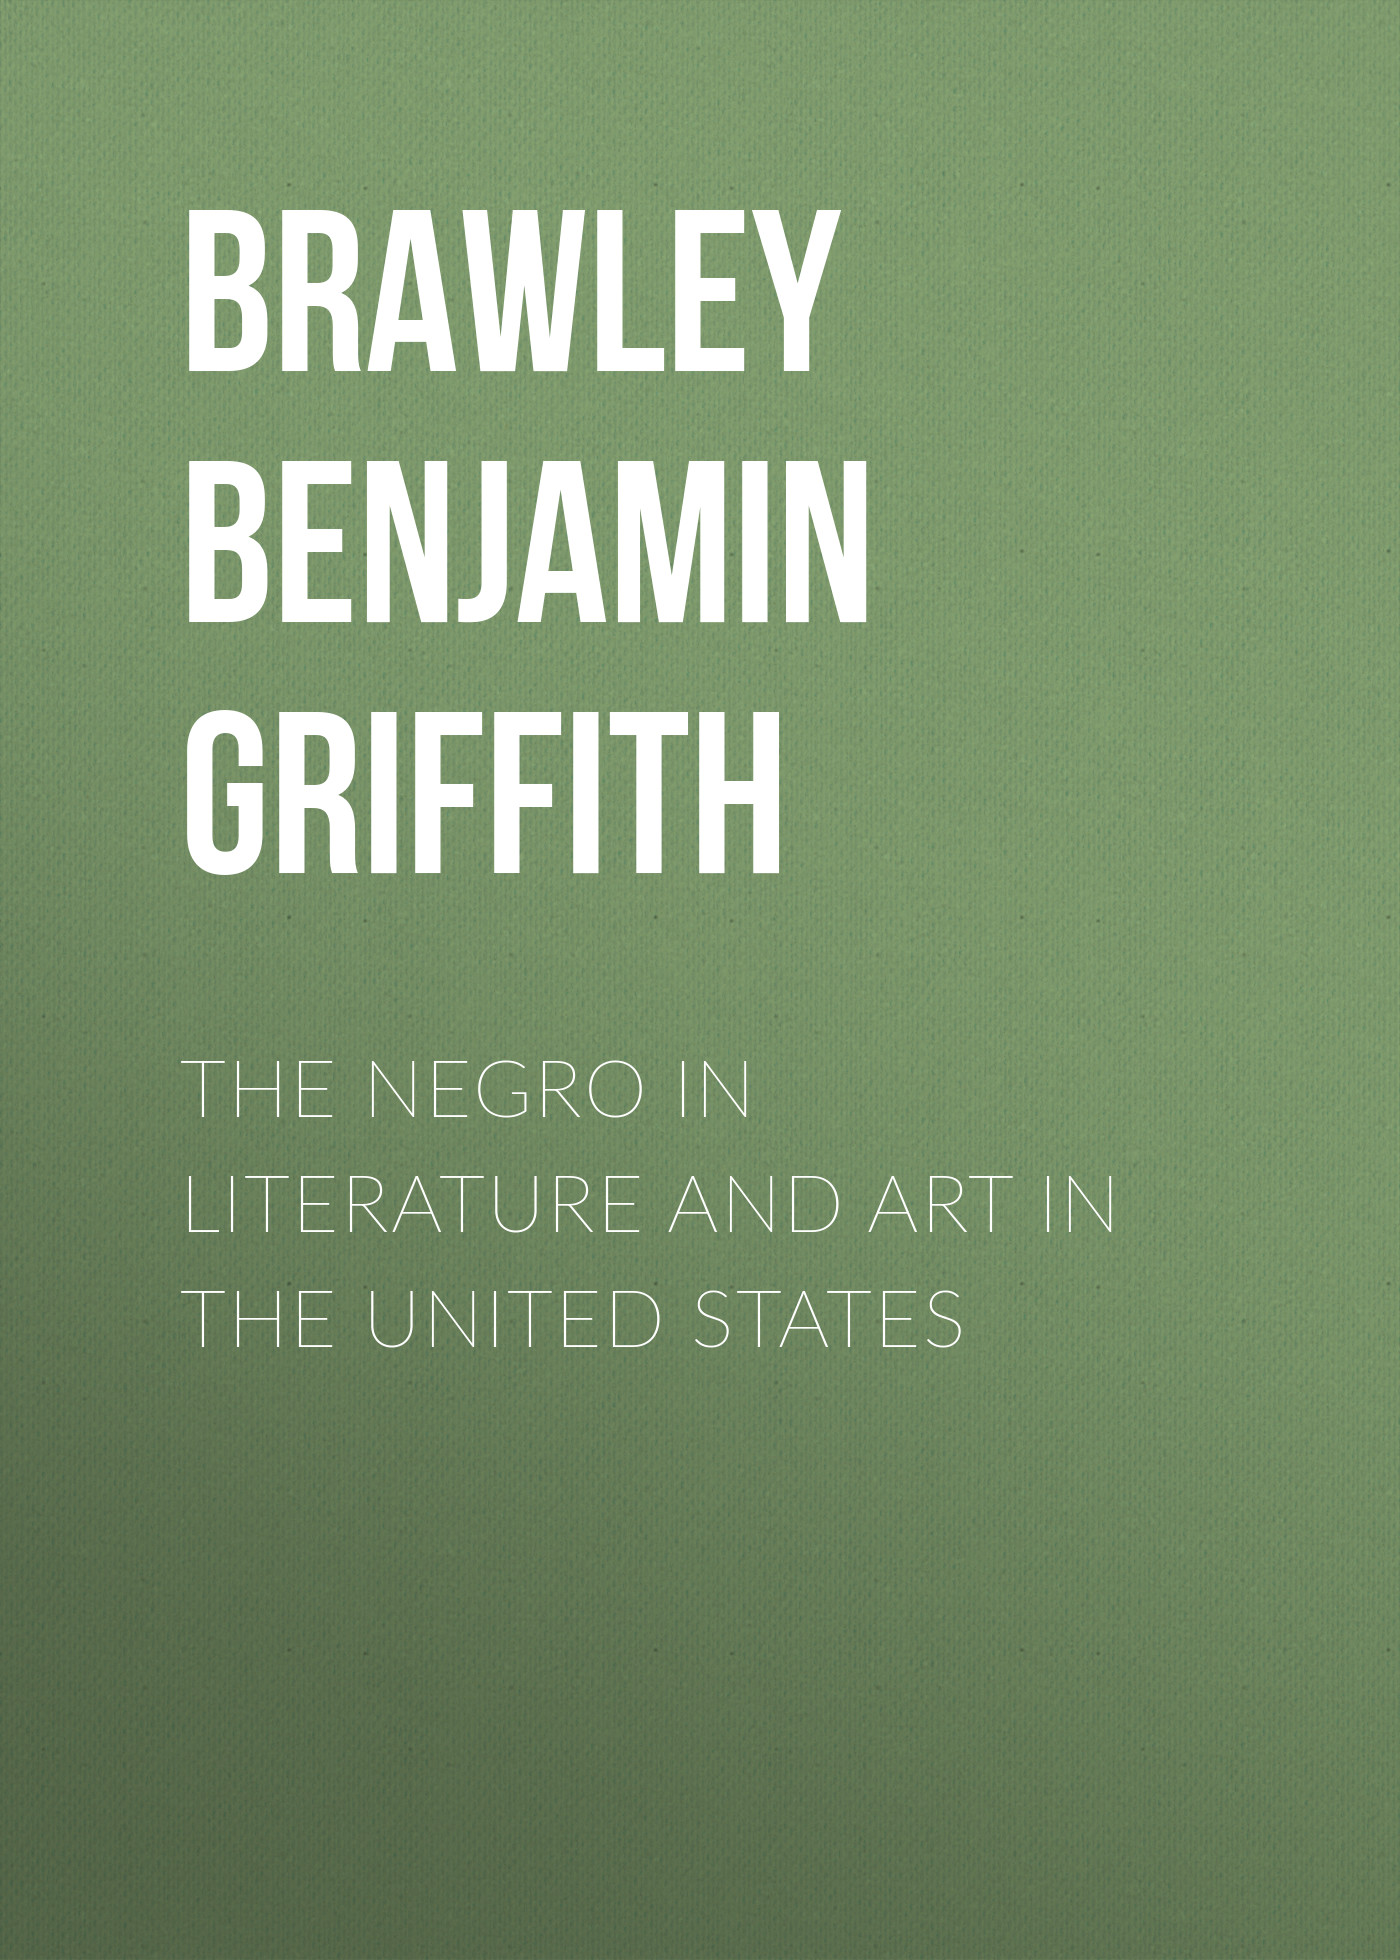 Brawley Benjamin Griffith The Negro in Literature and Art in the United States becket griffith j myths